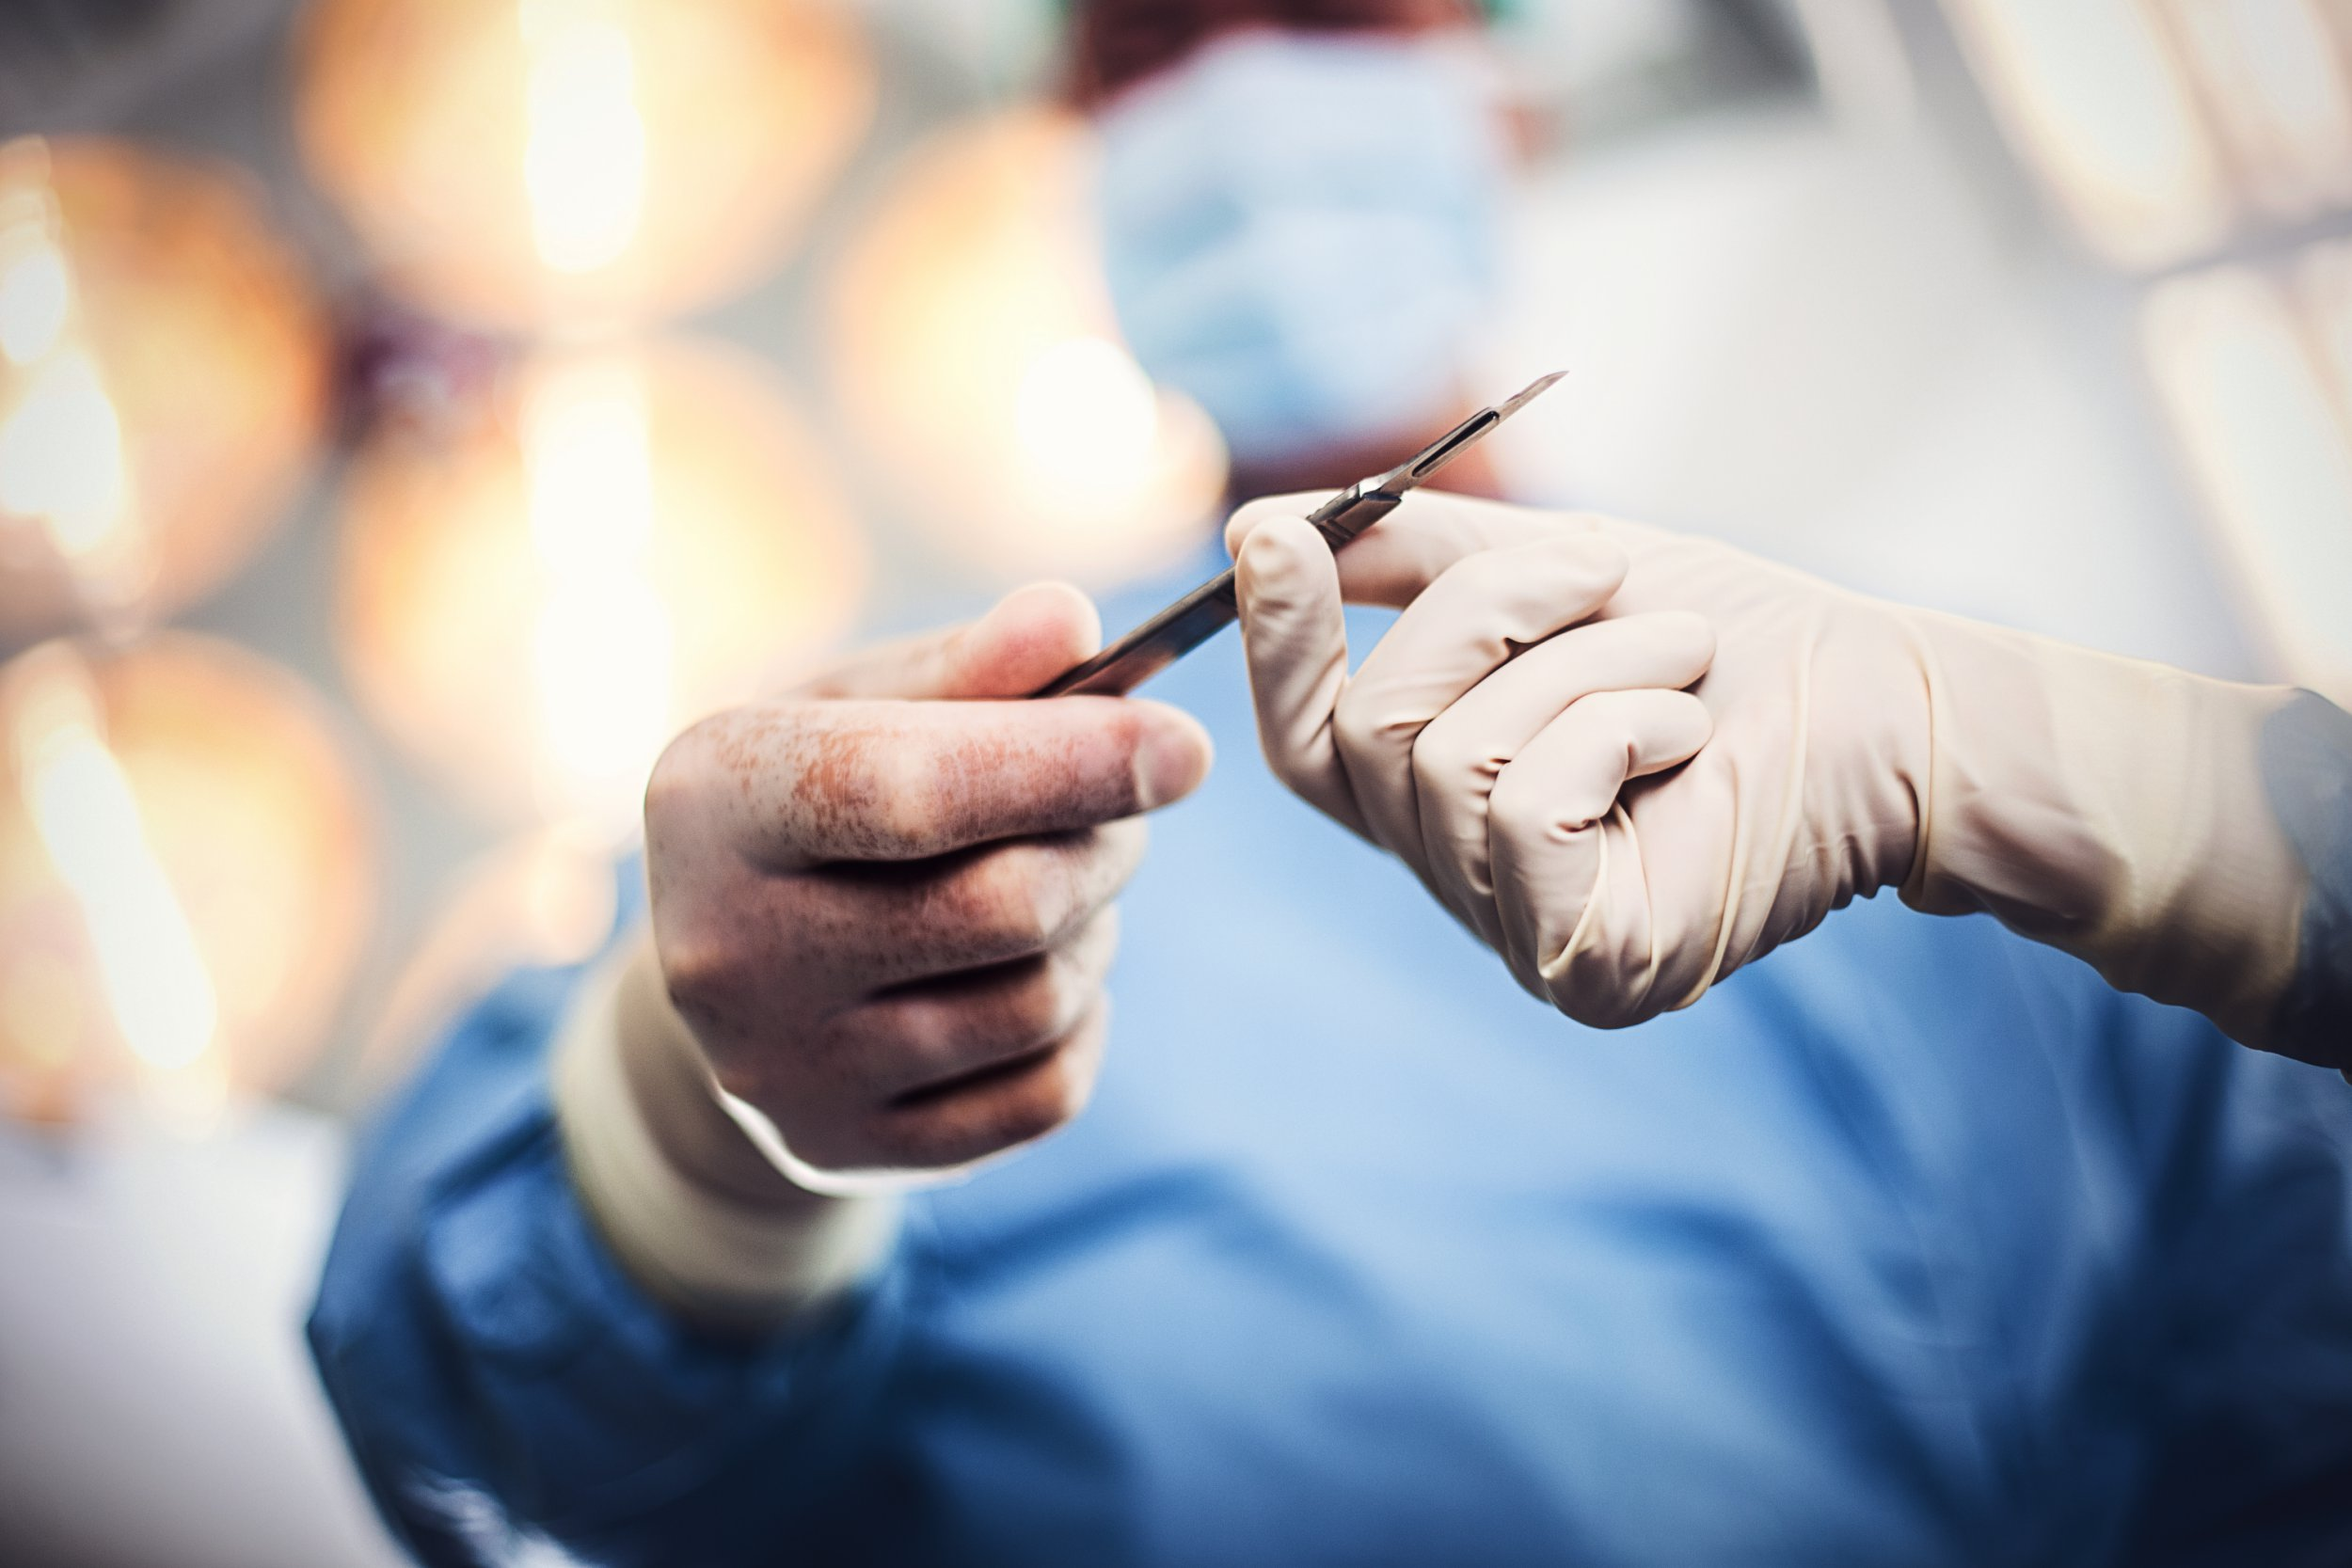 Botched plastic surgery abroad is costing the NHS millions